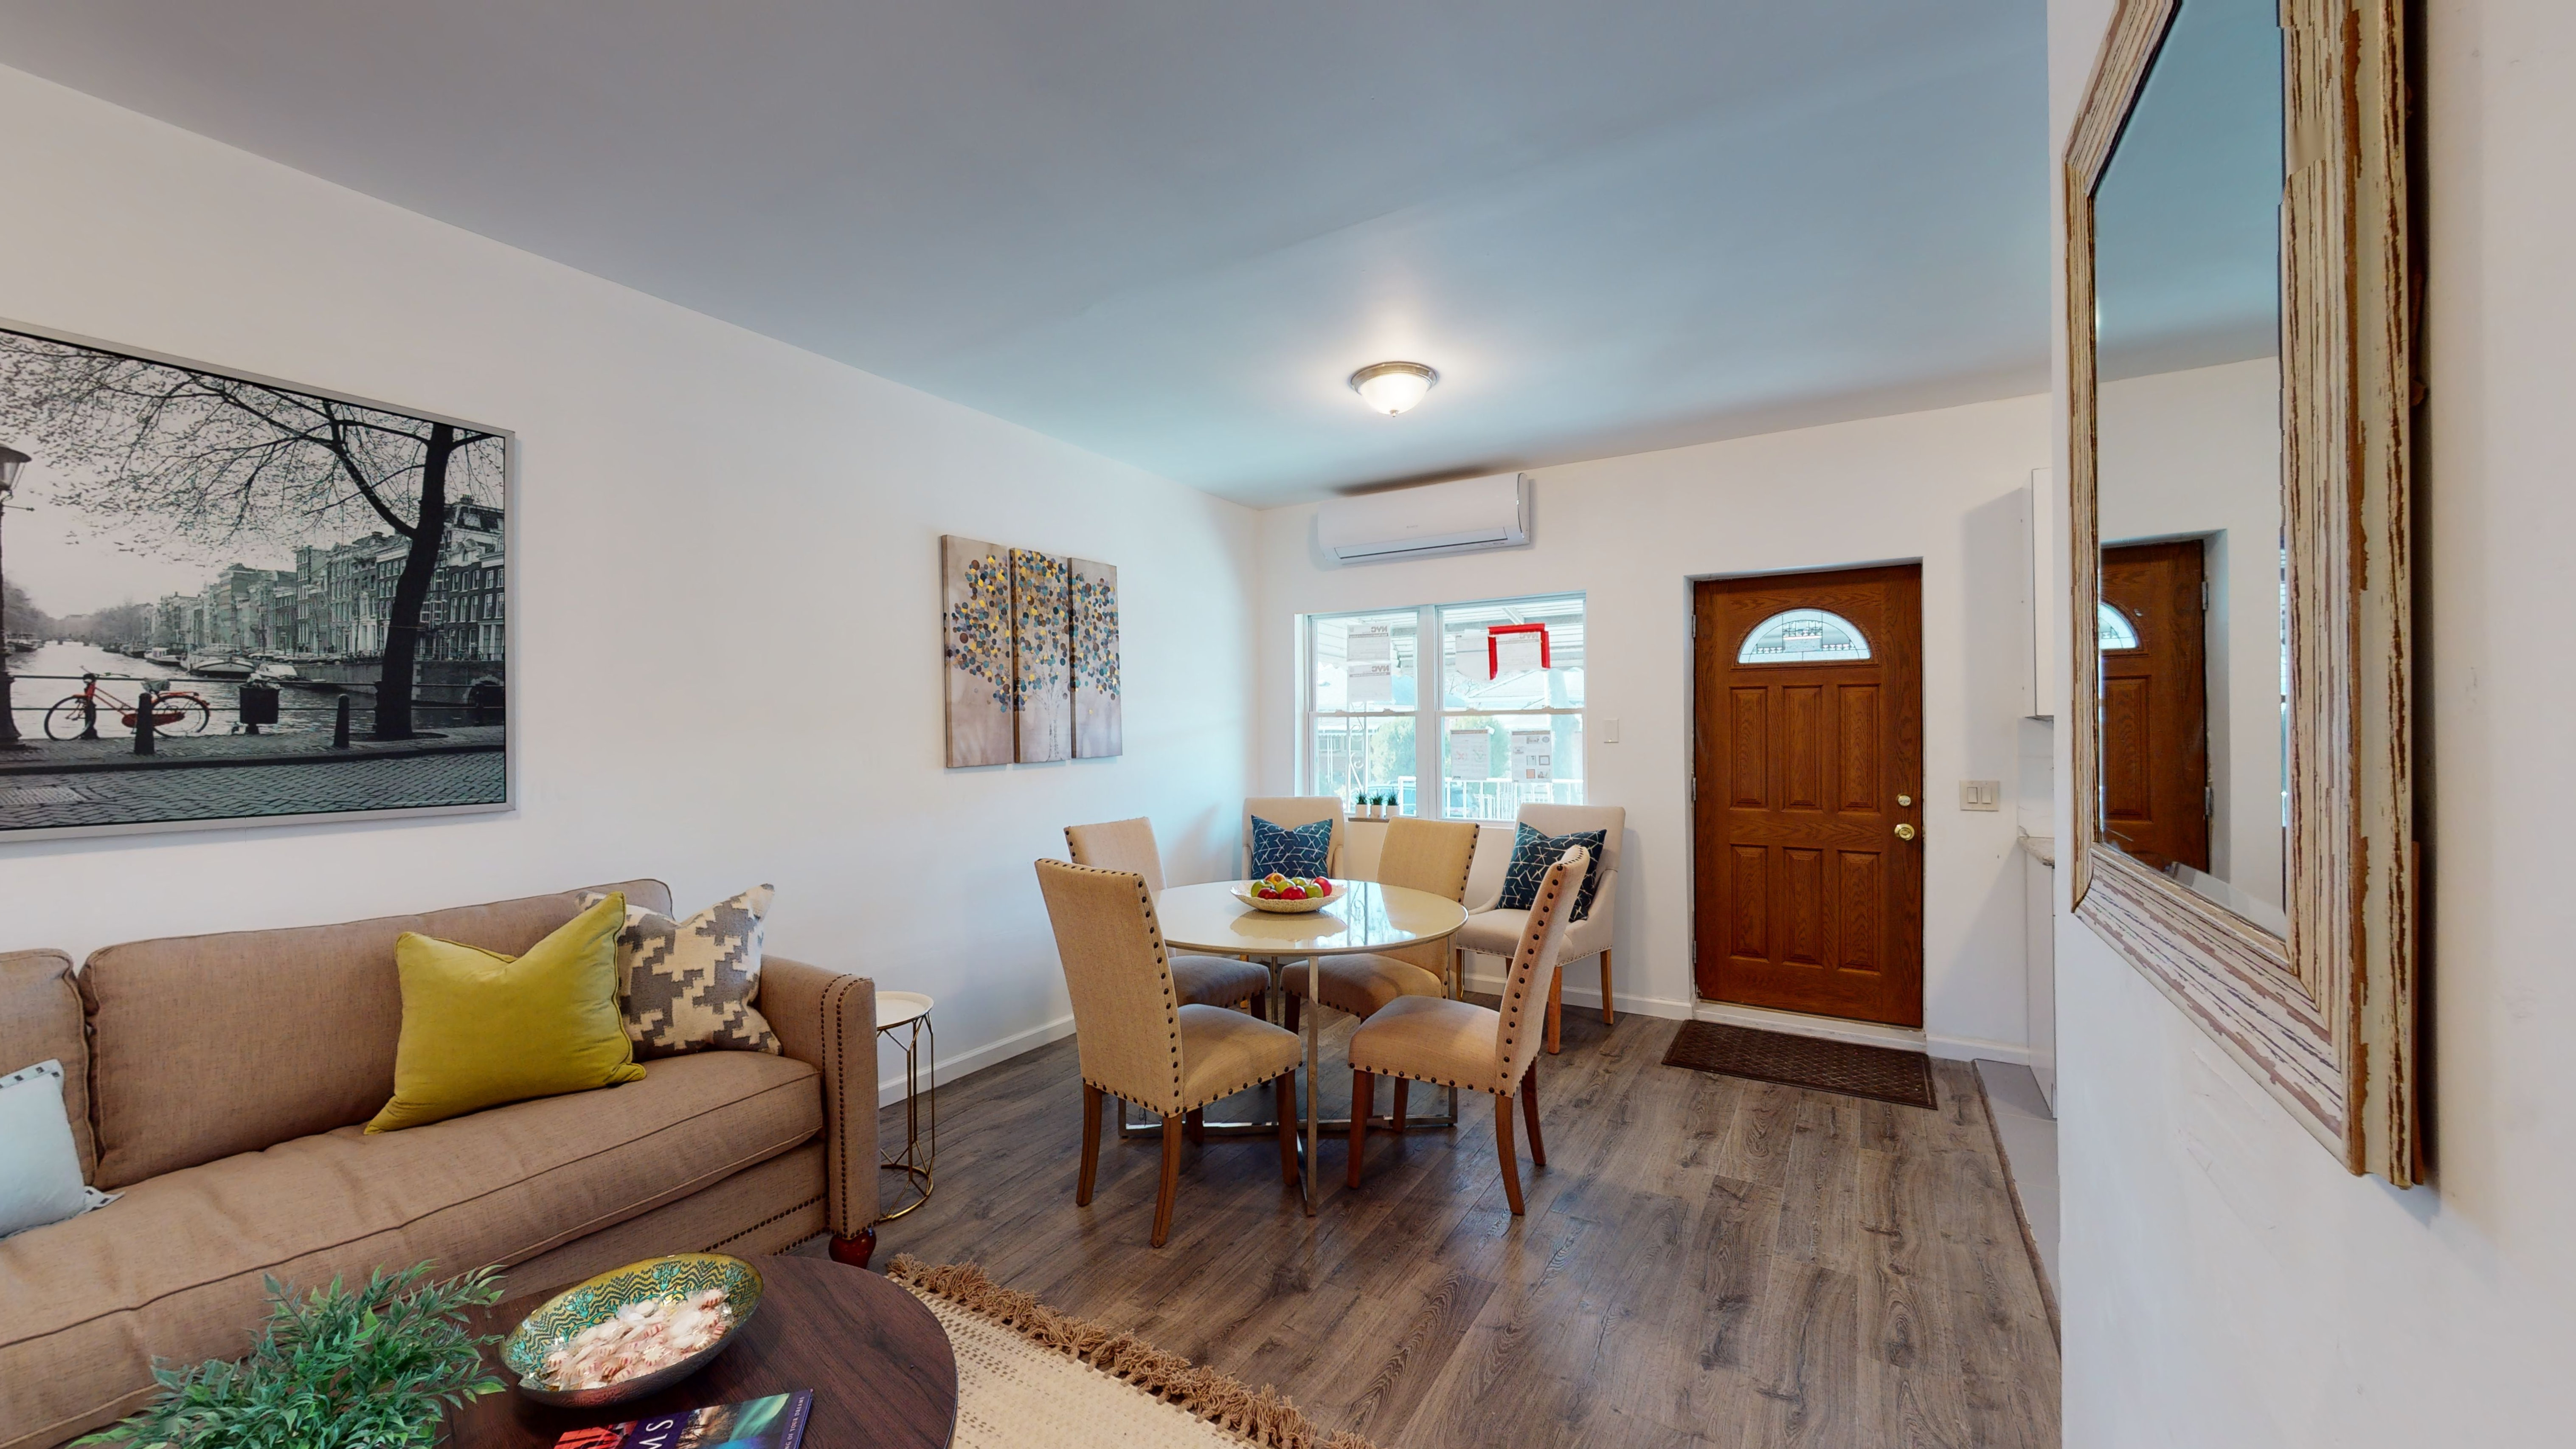 Apartment for sale at 131 E 45th Street, Apt HOUSE